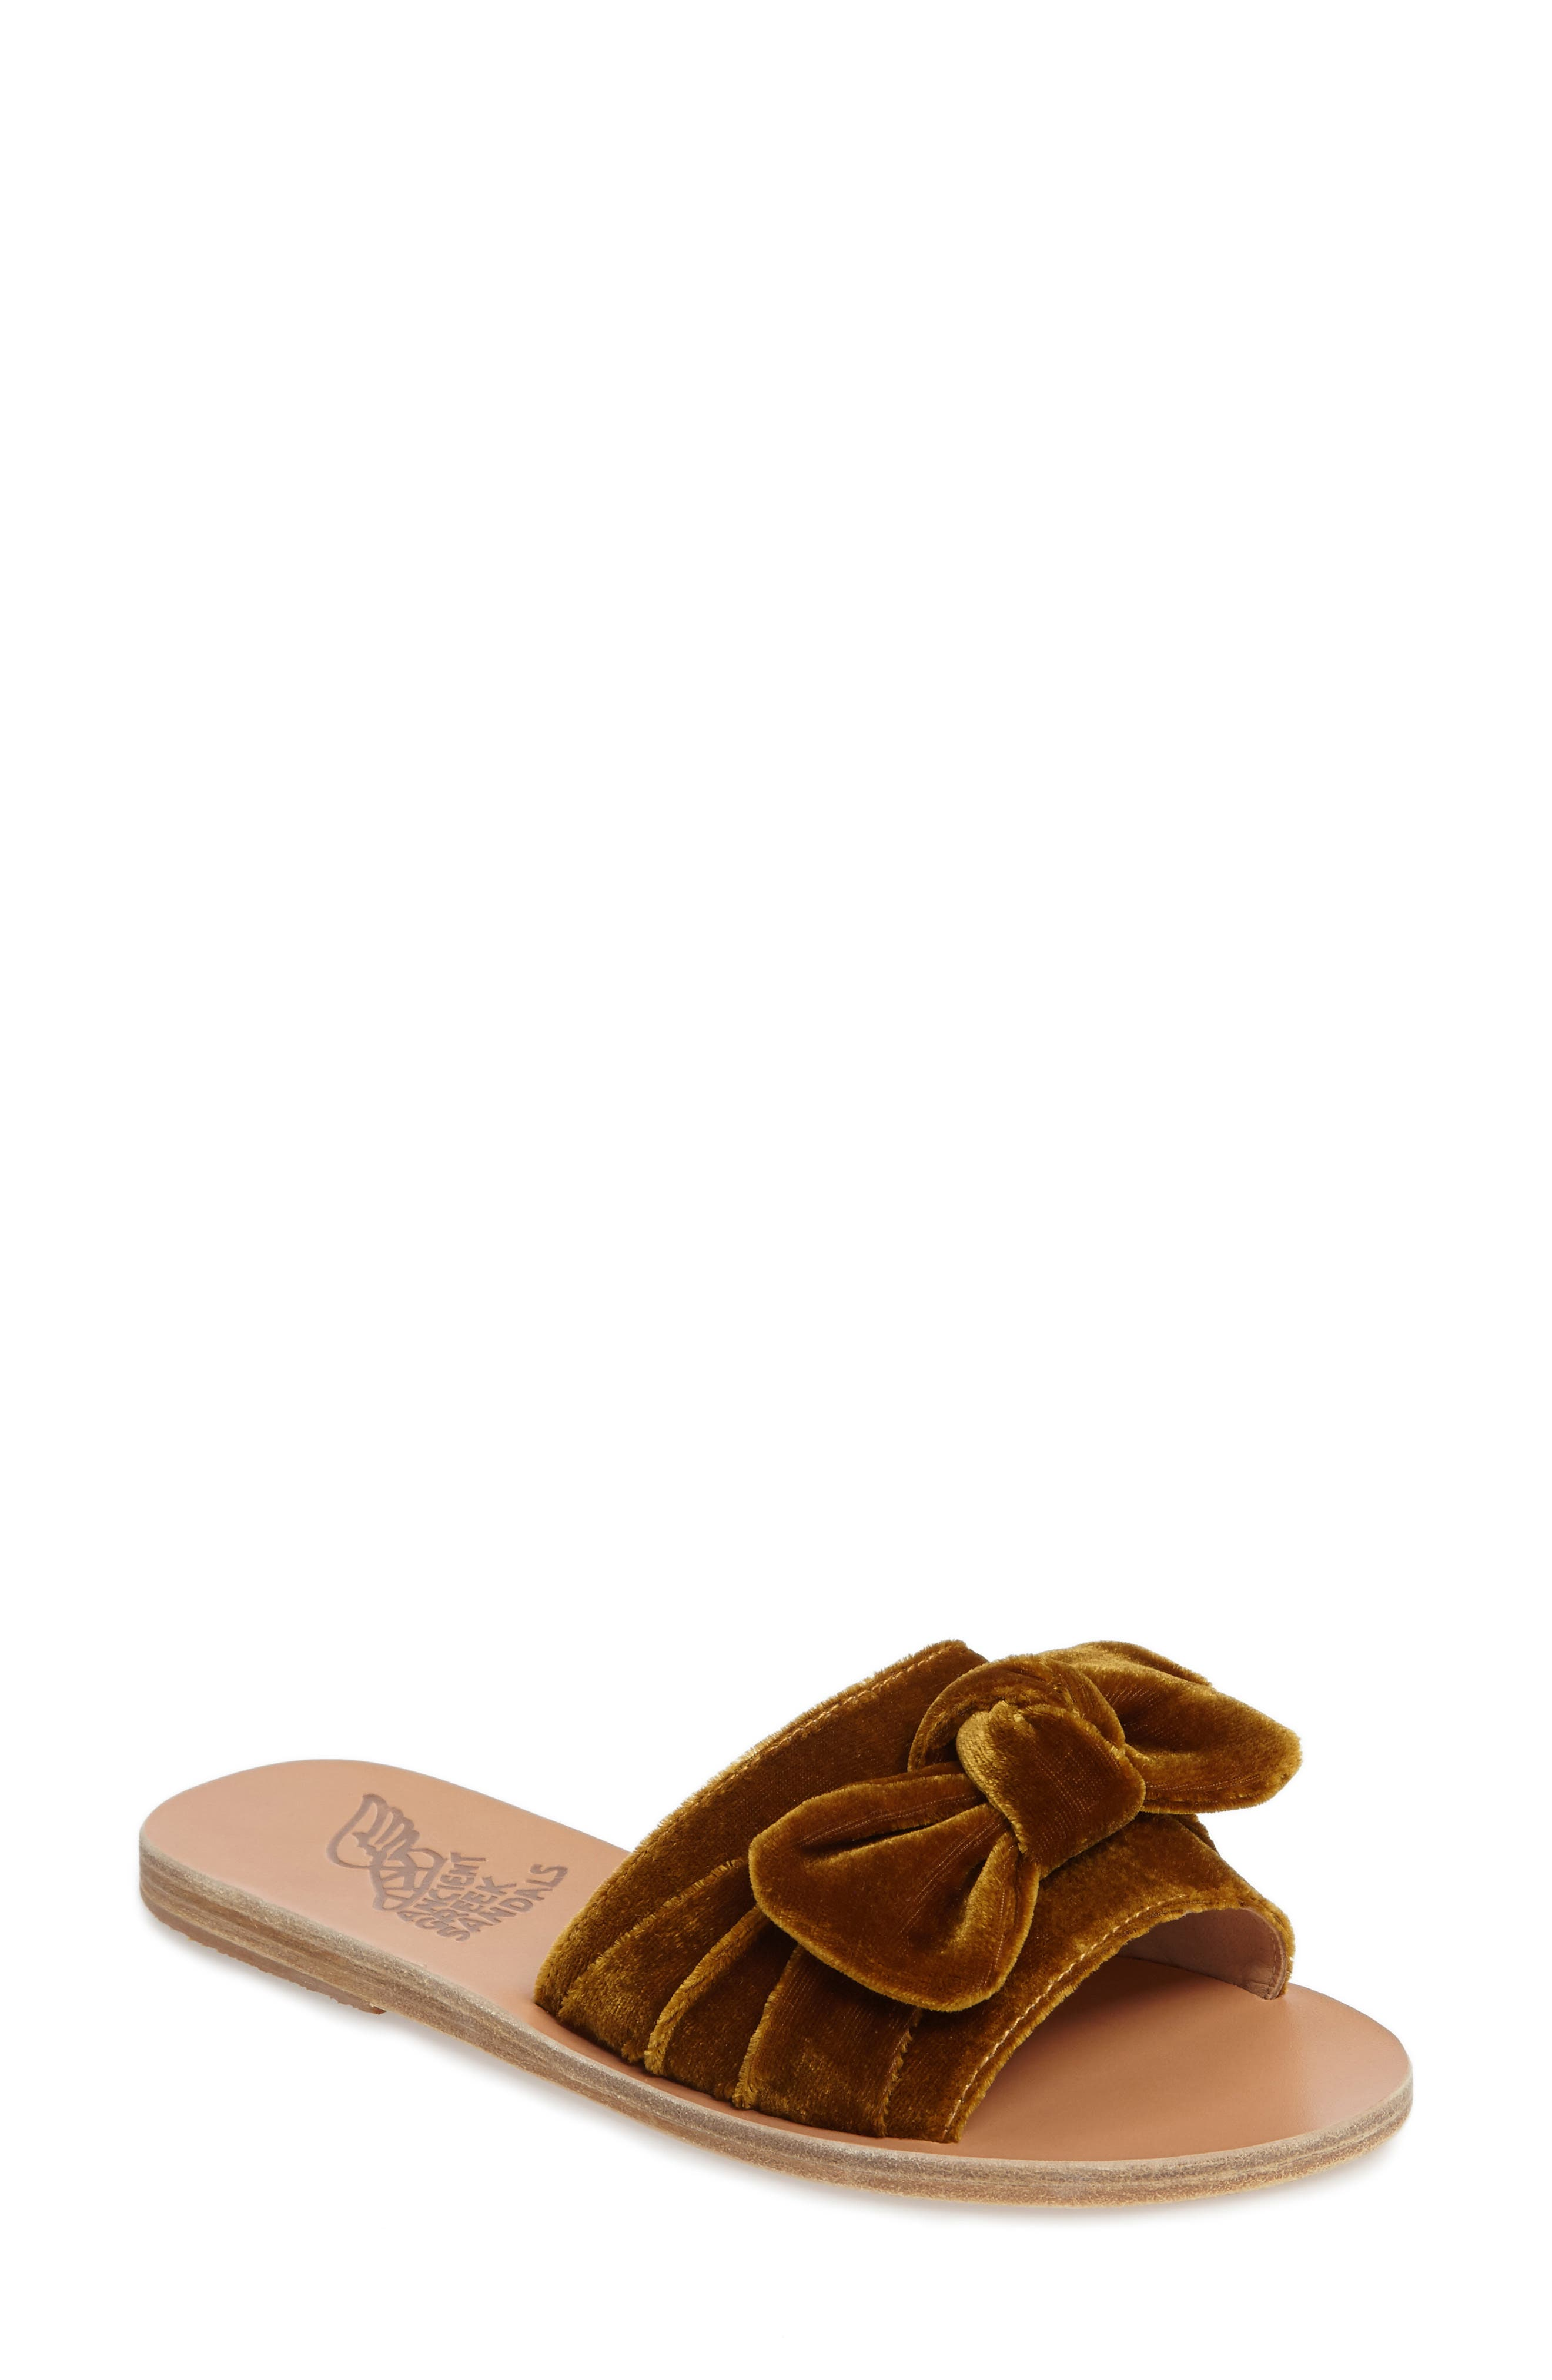 Taygete Bow Slide Sandal,                             Main thumbnail 4, color,